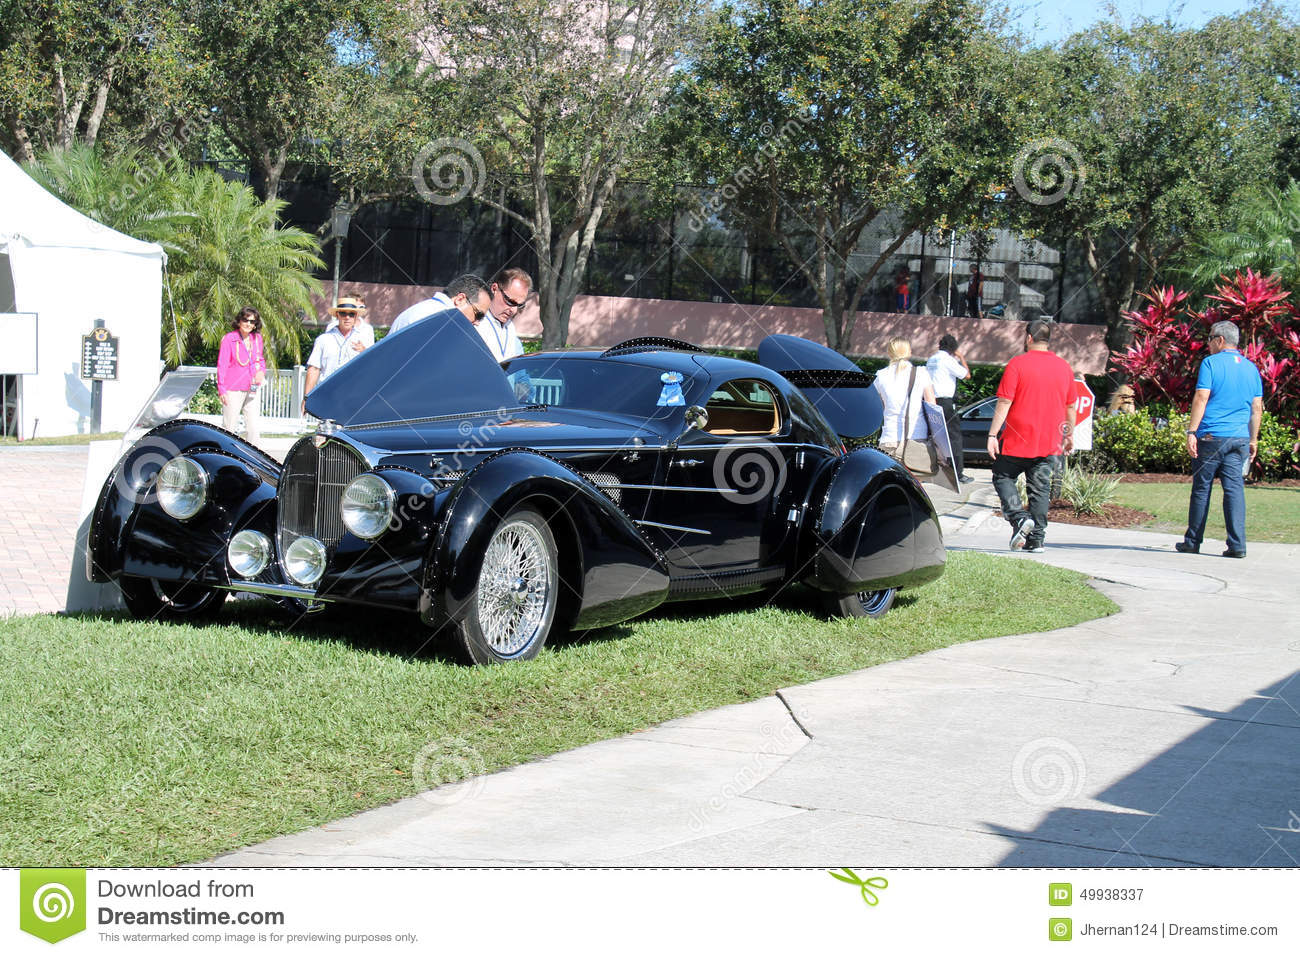 Modern Classic Luxury Car On Display At Event Stock Photo 49938337 ...